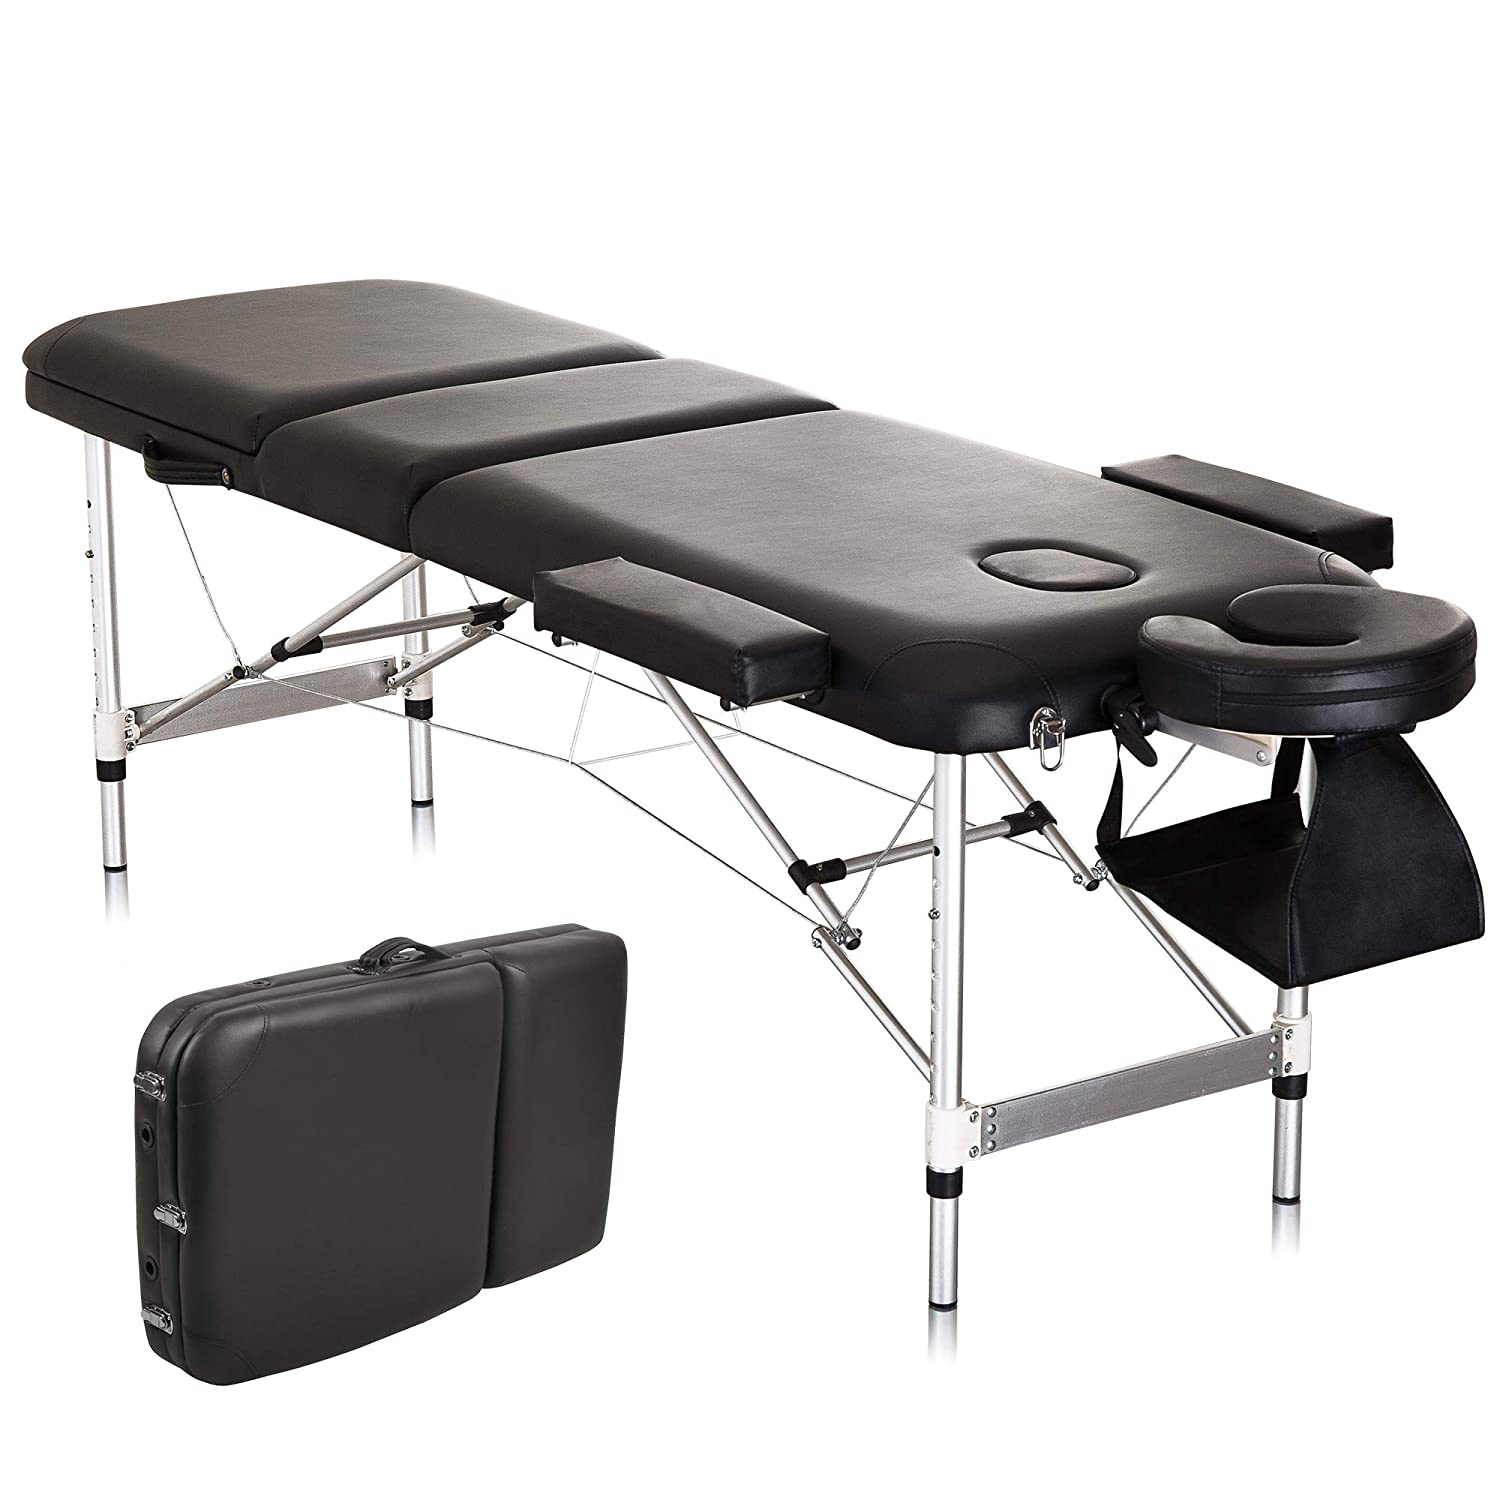 Protable Massage Table 73 Aluminium Spa Bed 3 Fold Height Adjustable with Carrying Bag and Additional Accessories,Black